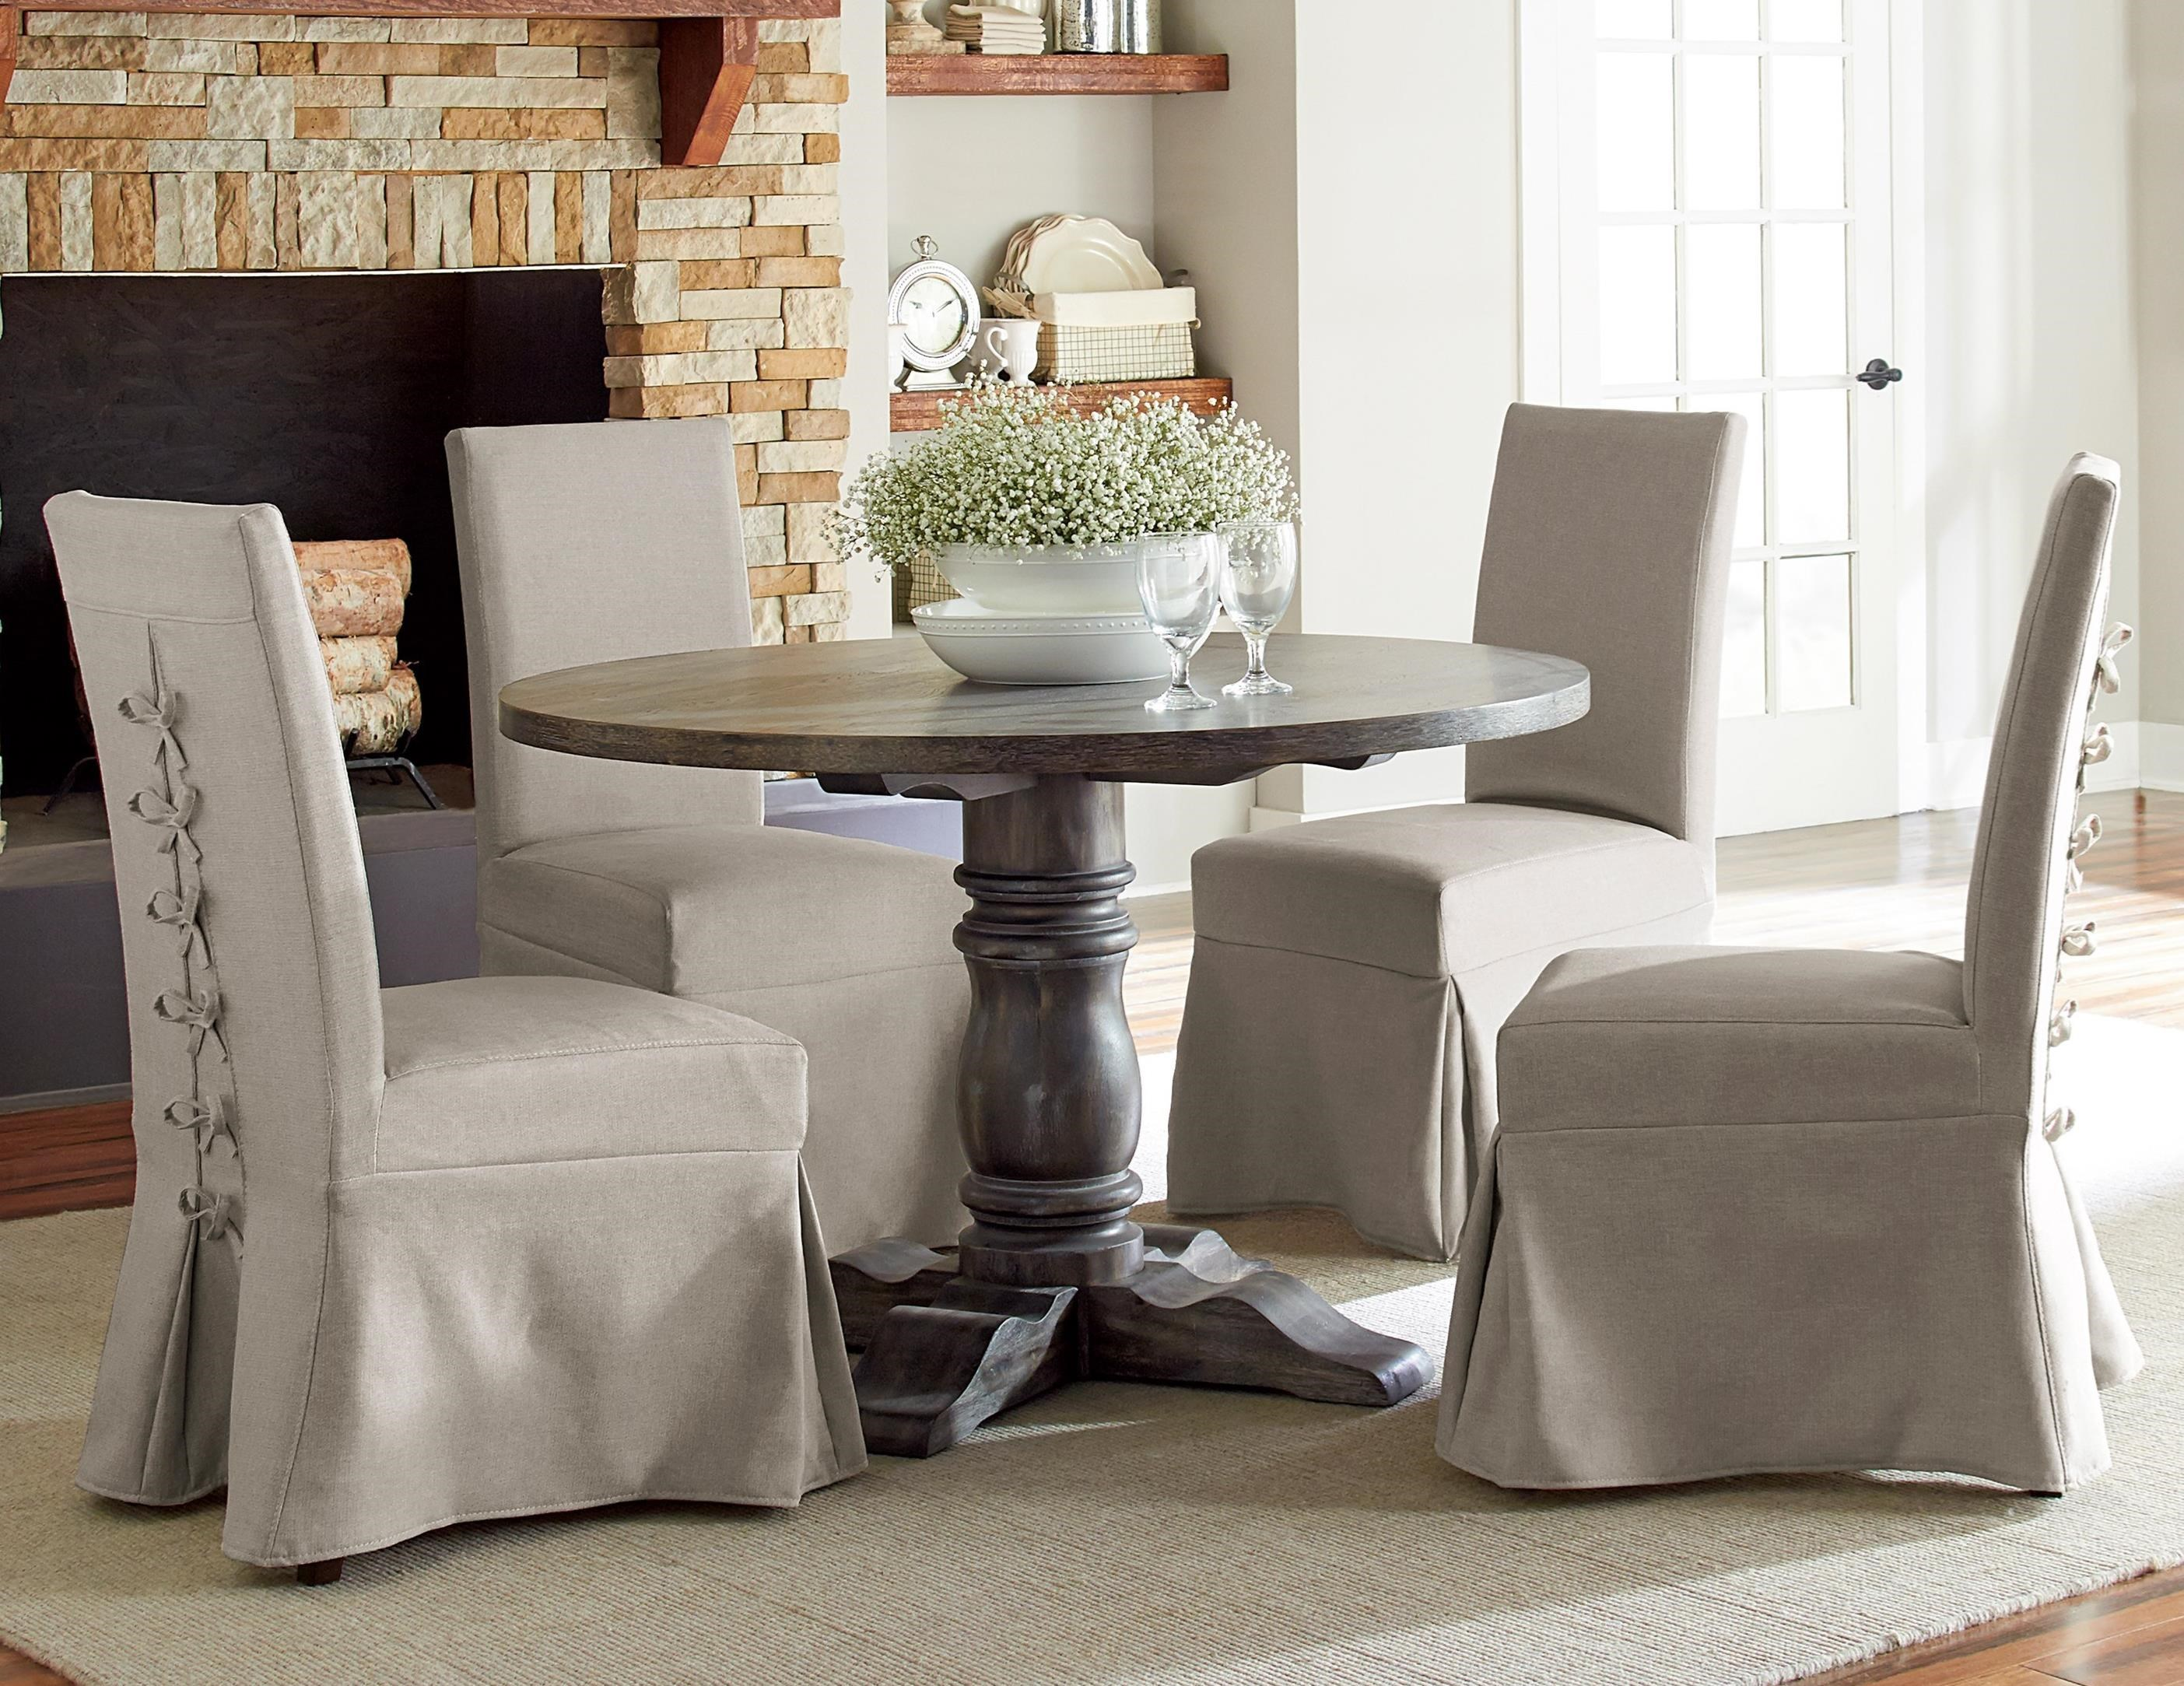 Muses 5 Piece Round Dining Table Set